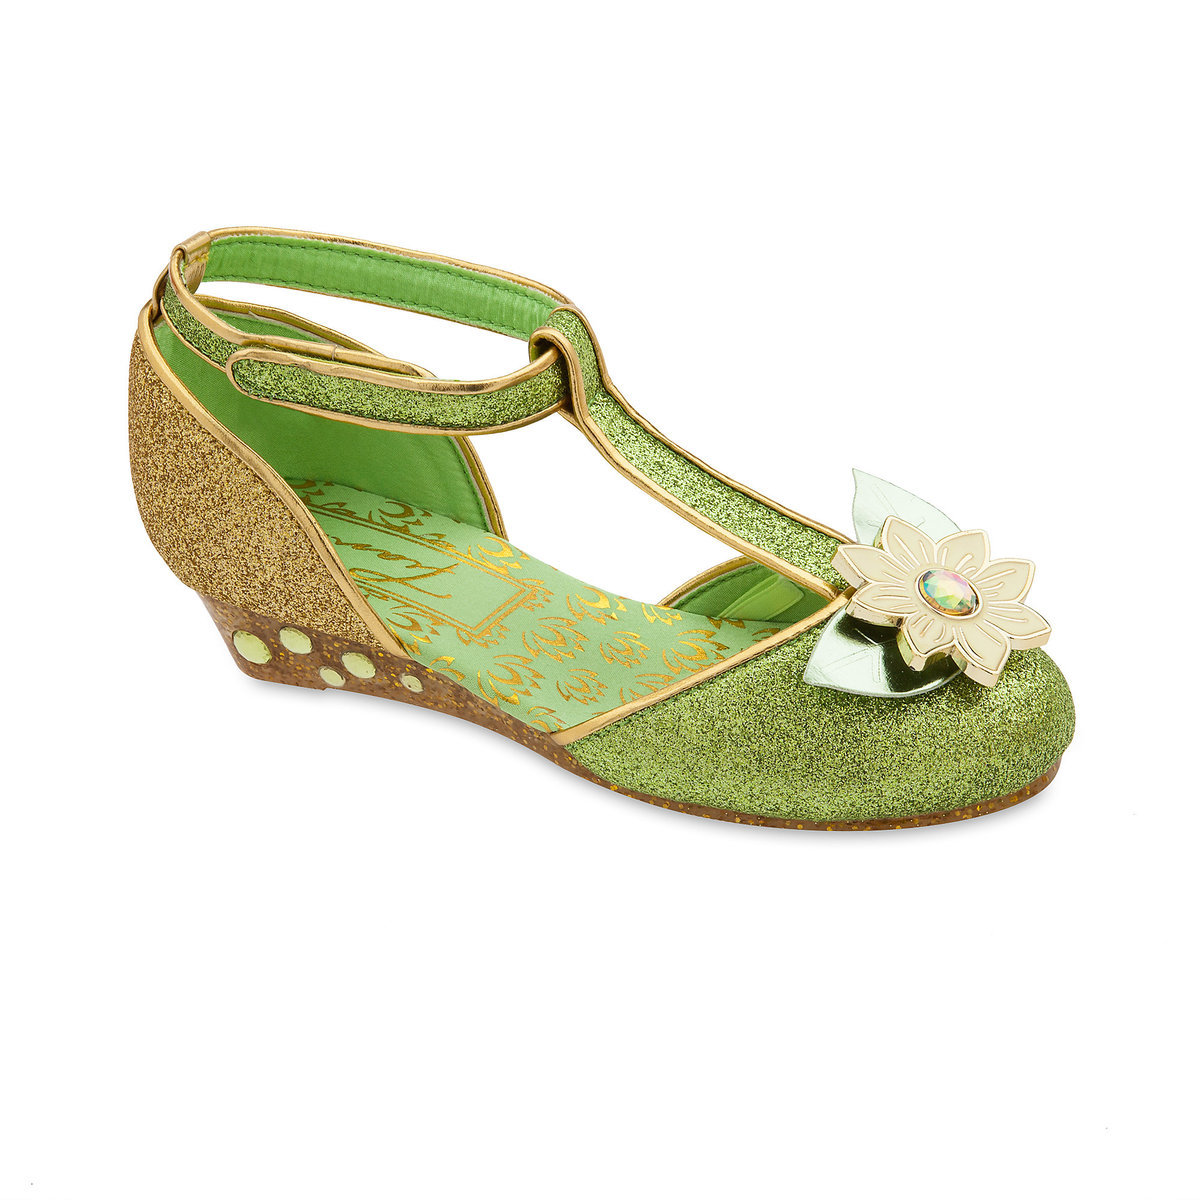 7353cdad9f78 Product Image of Tiana Costume Shoes for Kids   1